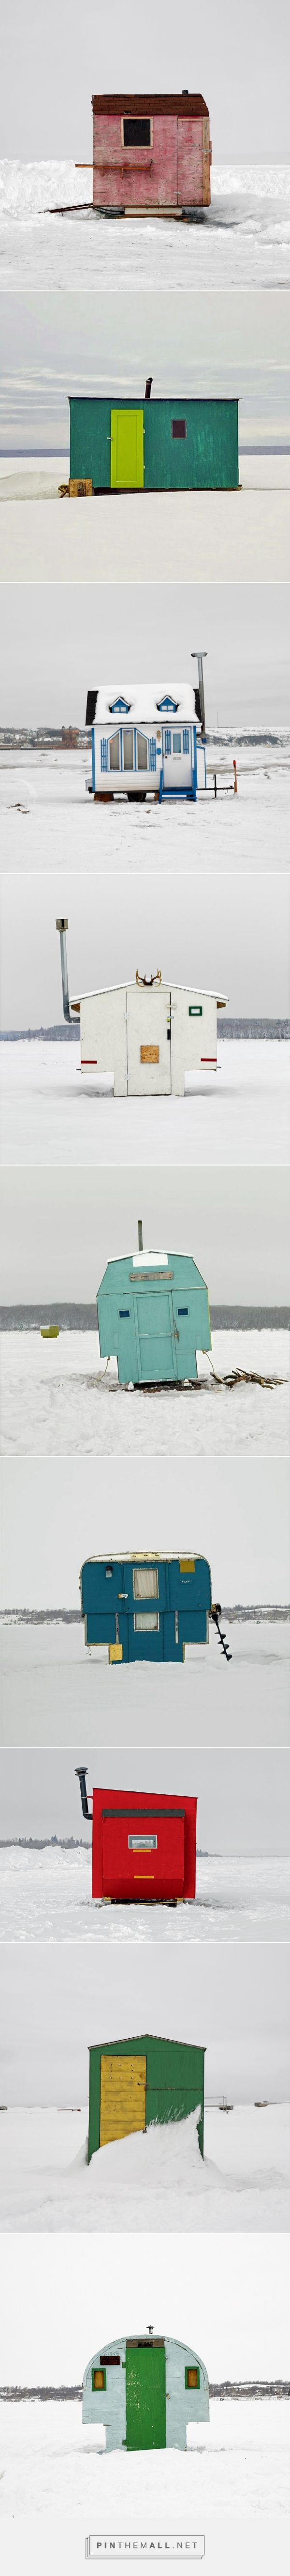 A visual survey of Canadian ice huts by Richard Johnson. These temporary structures are a haphazard mix of sheet metal, faux wood paneling, and waterproof tarps, providing a bit of shelter who are ice fishing. Johnson has photographed more than 800 huts in all ten provinces of Canada, and has organized the photos into a typological survey | DesignFaves